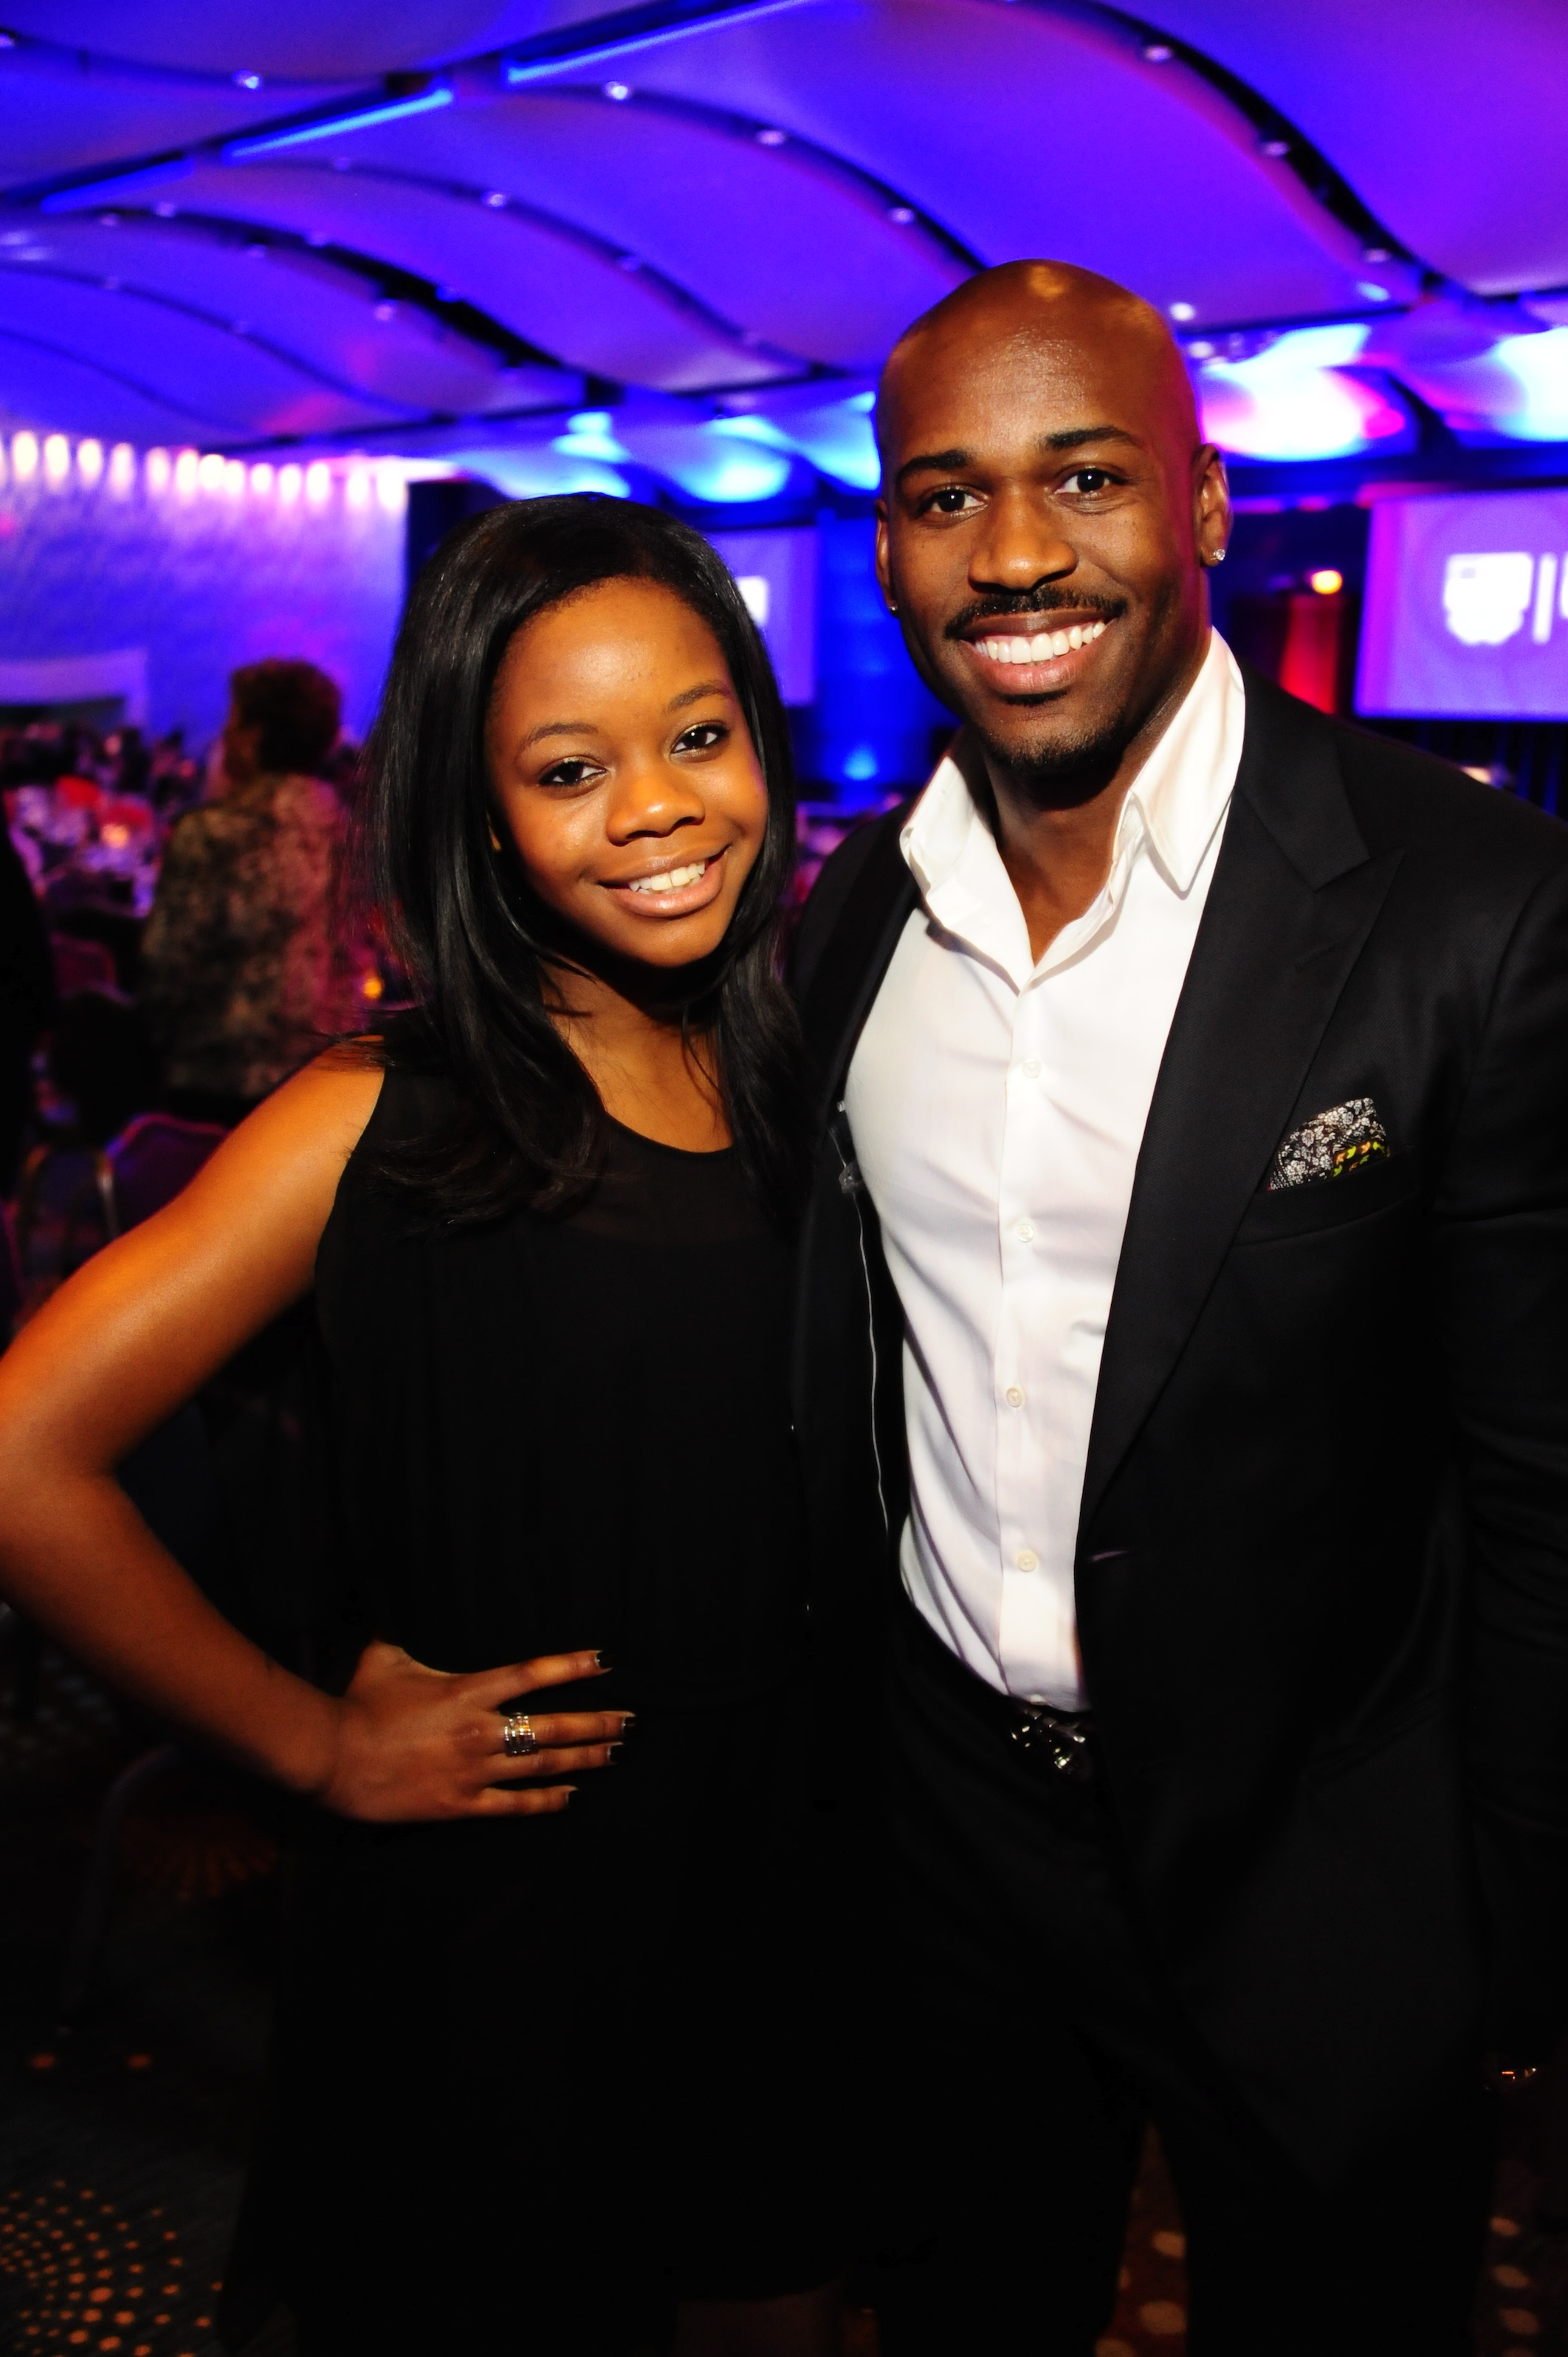 Gabby Douglas with Biggest Loser's Dolvett Quince